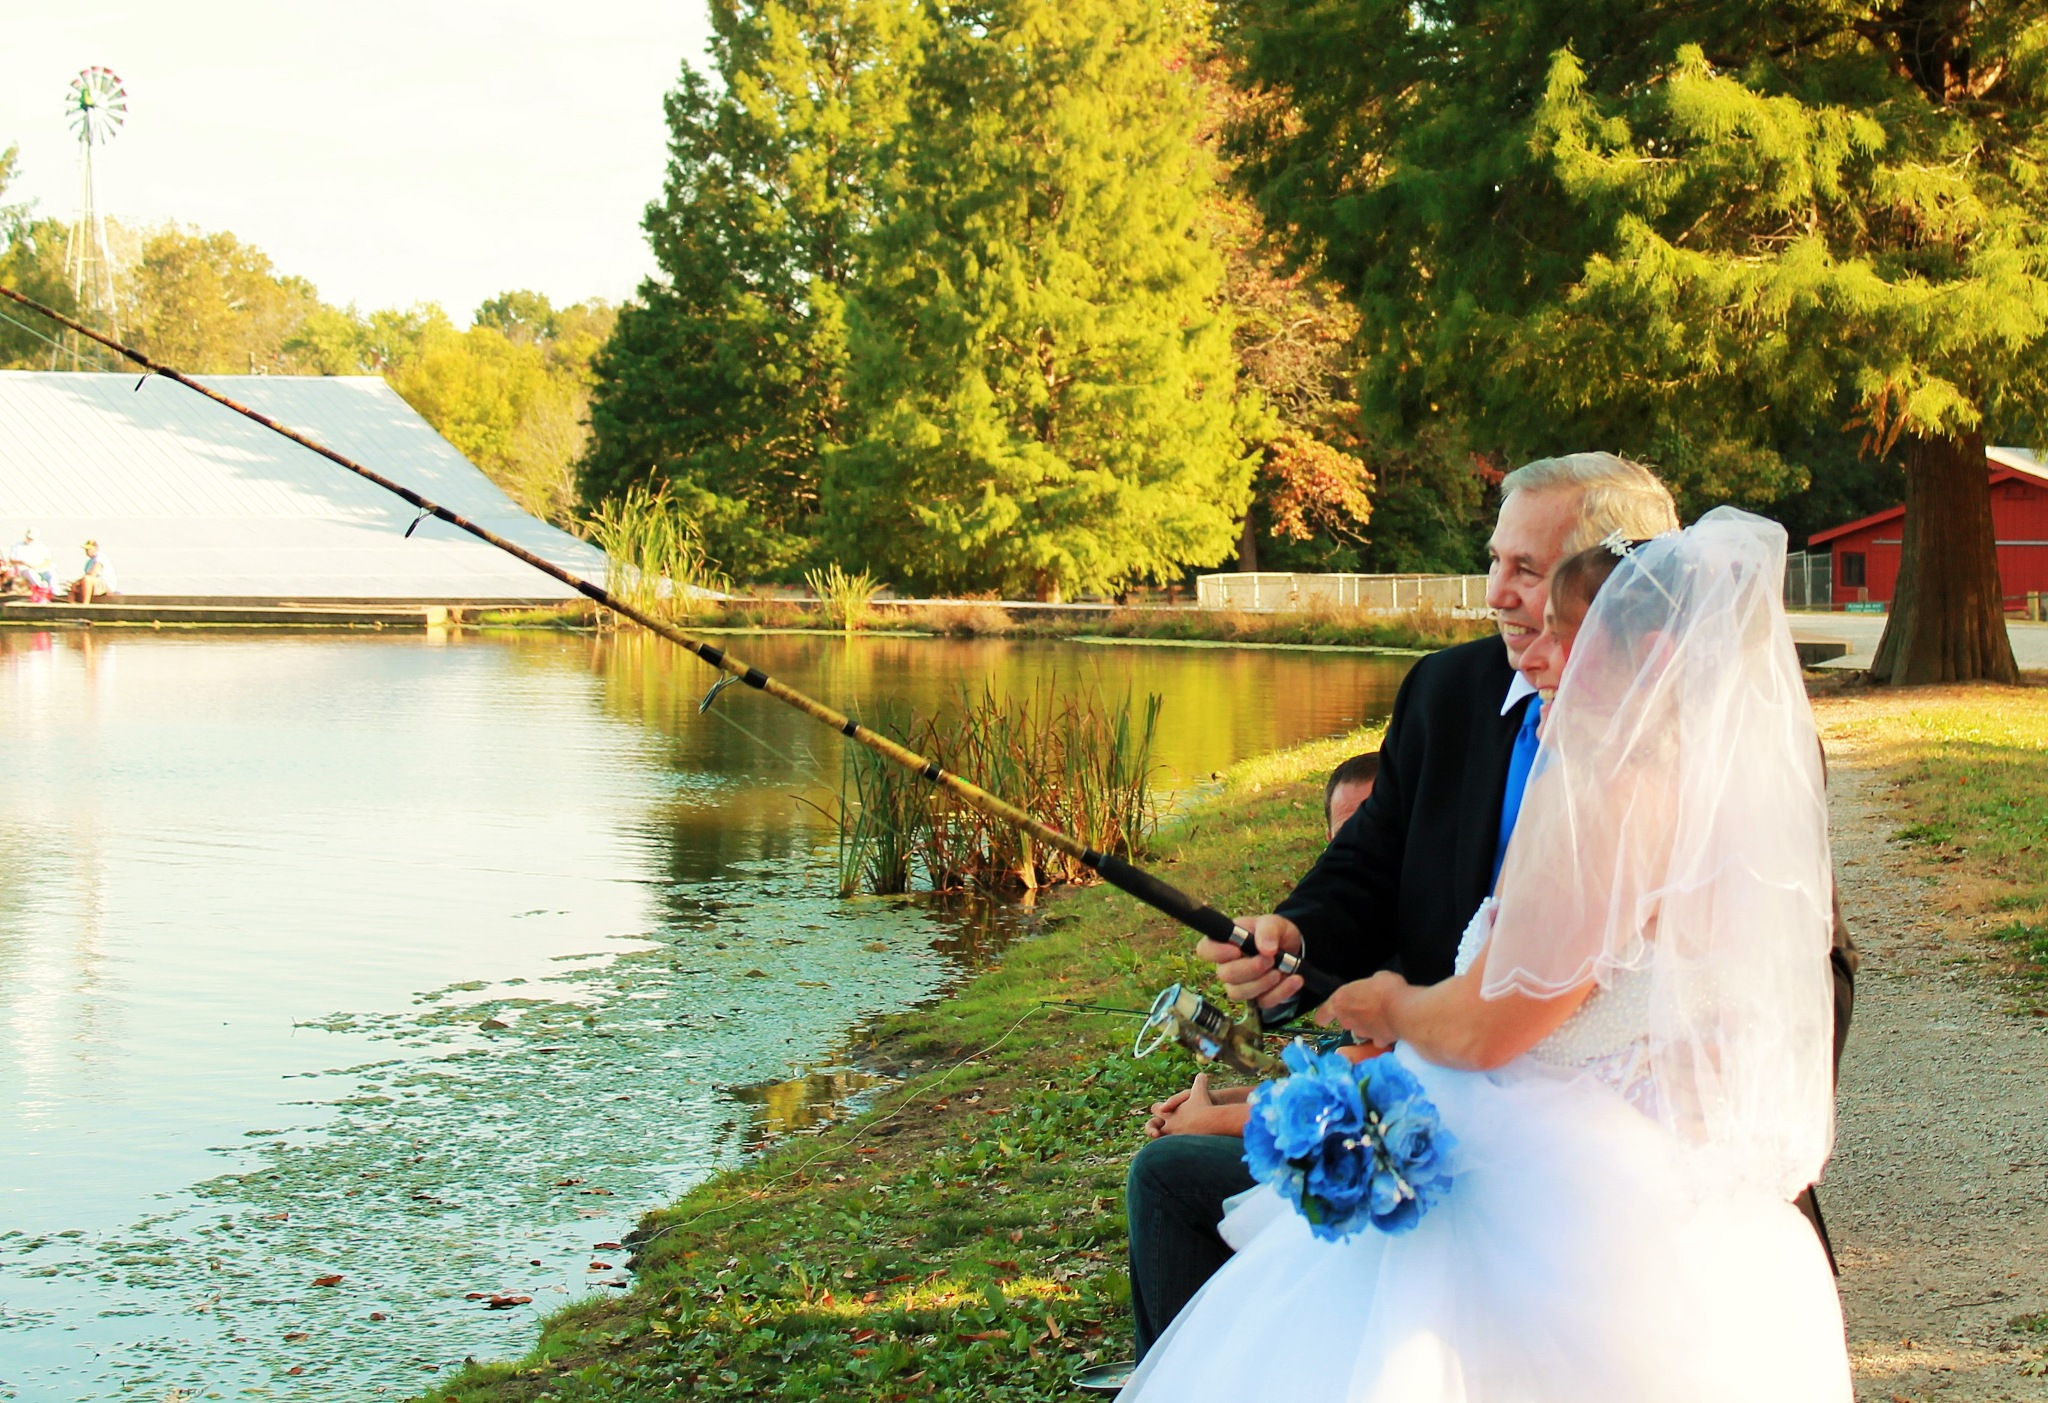 Bride & Groom Fishing on their wedding day  by Beautiful Nature